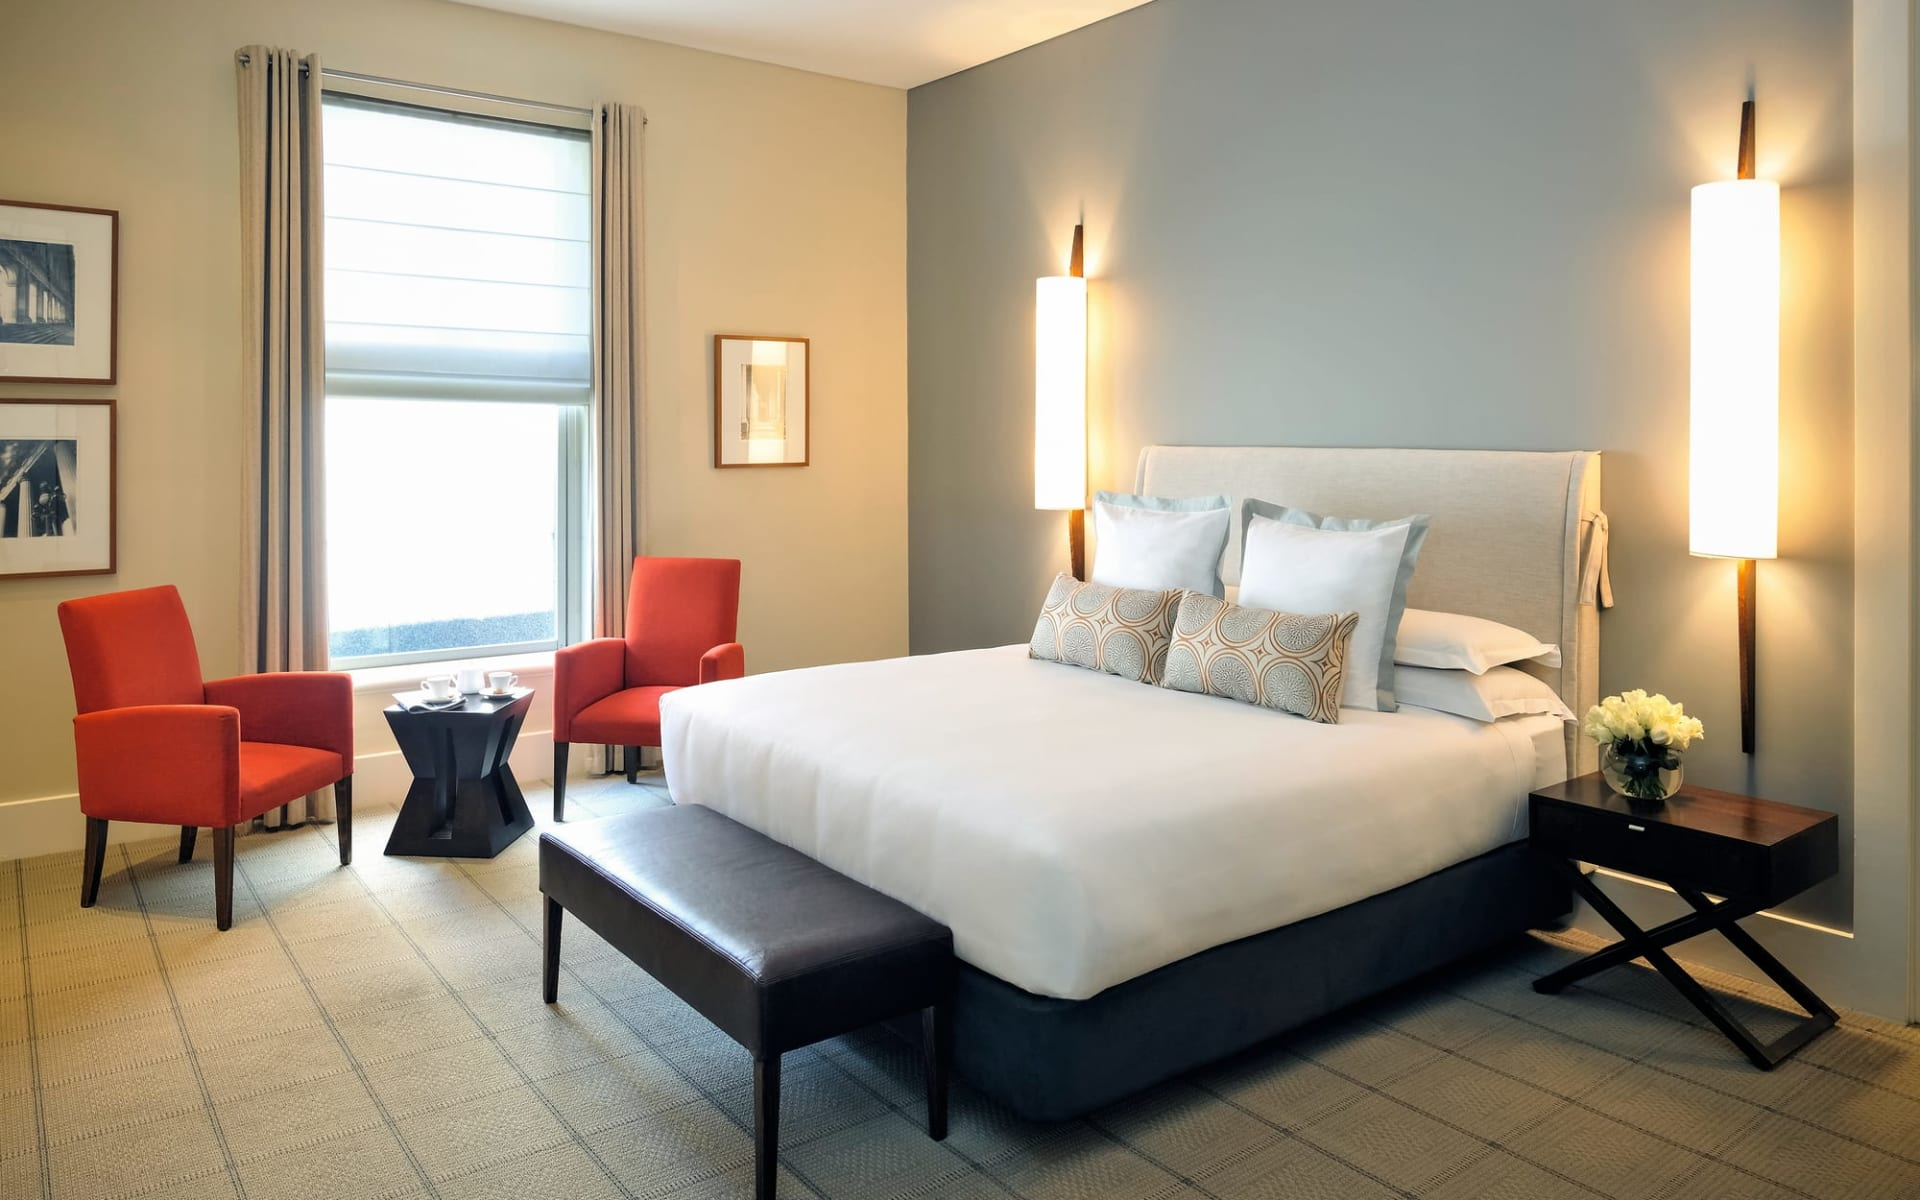 Lindrum Hotel - MGallery by Sofitel in Melbourne:  Lindrum Hotel MGallery Collection - Superior Room